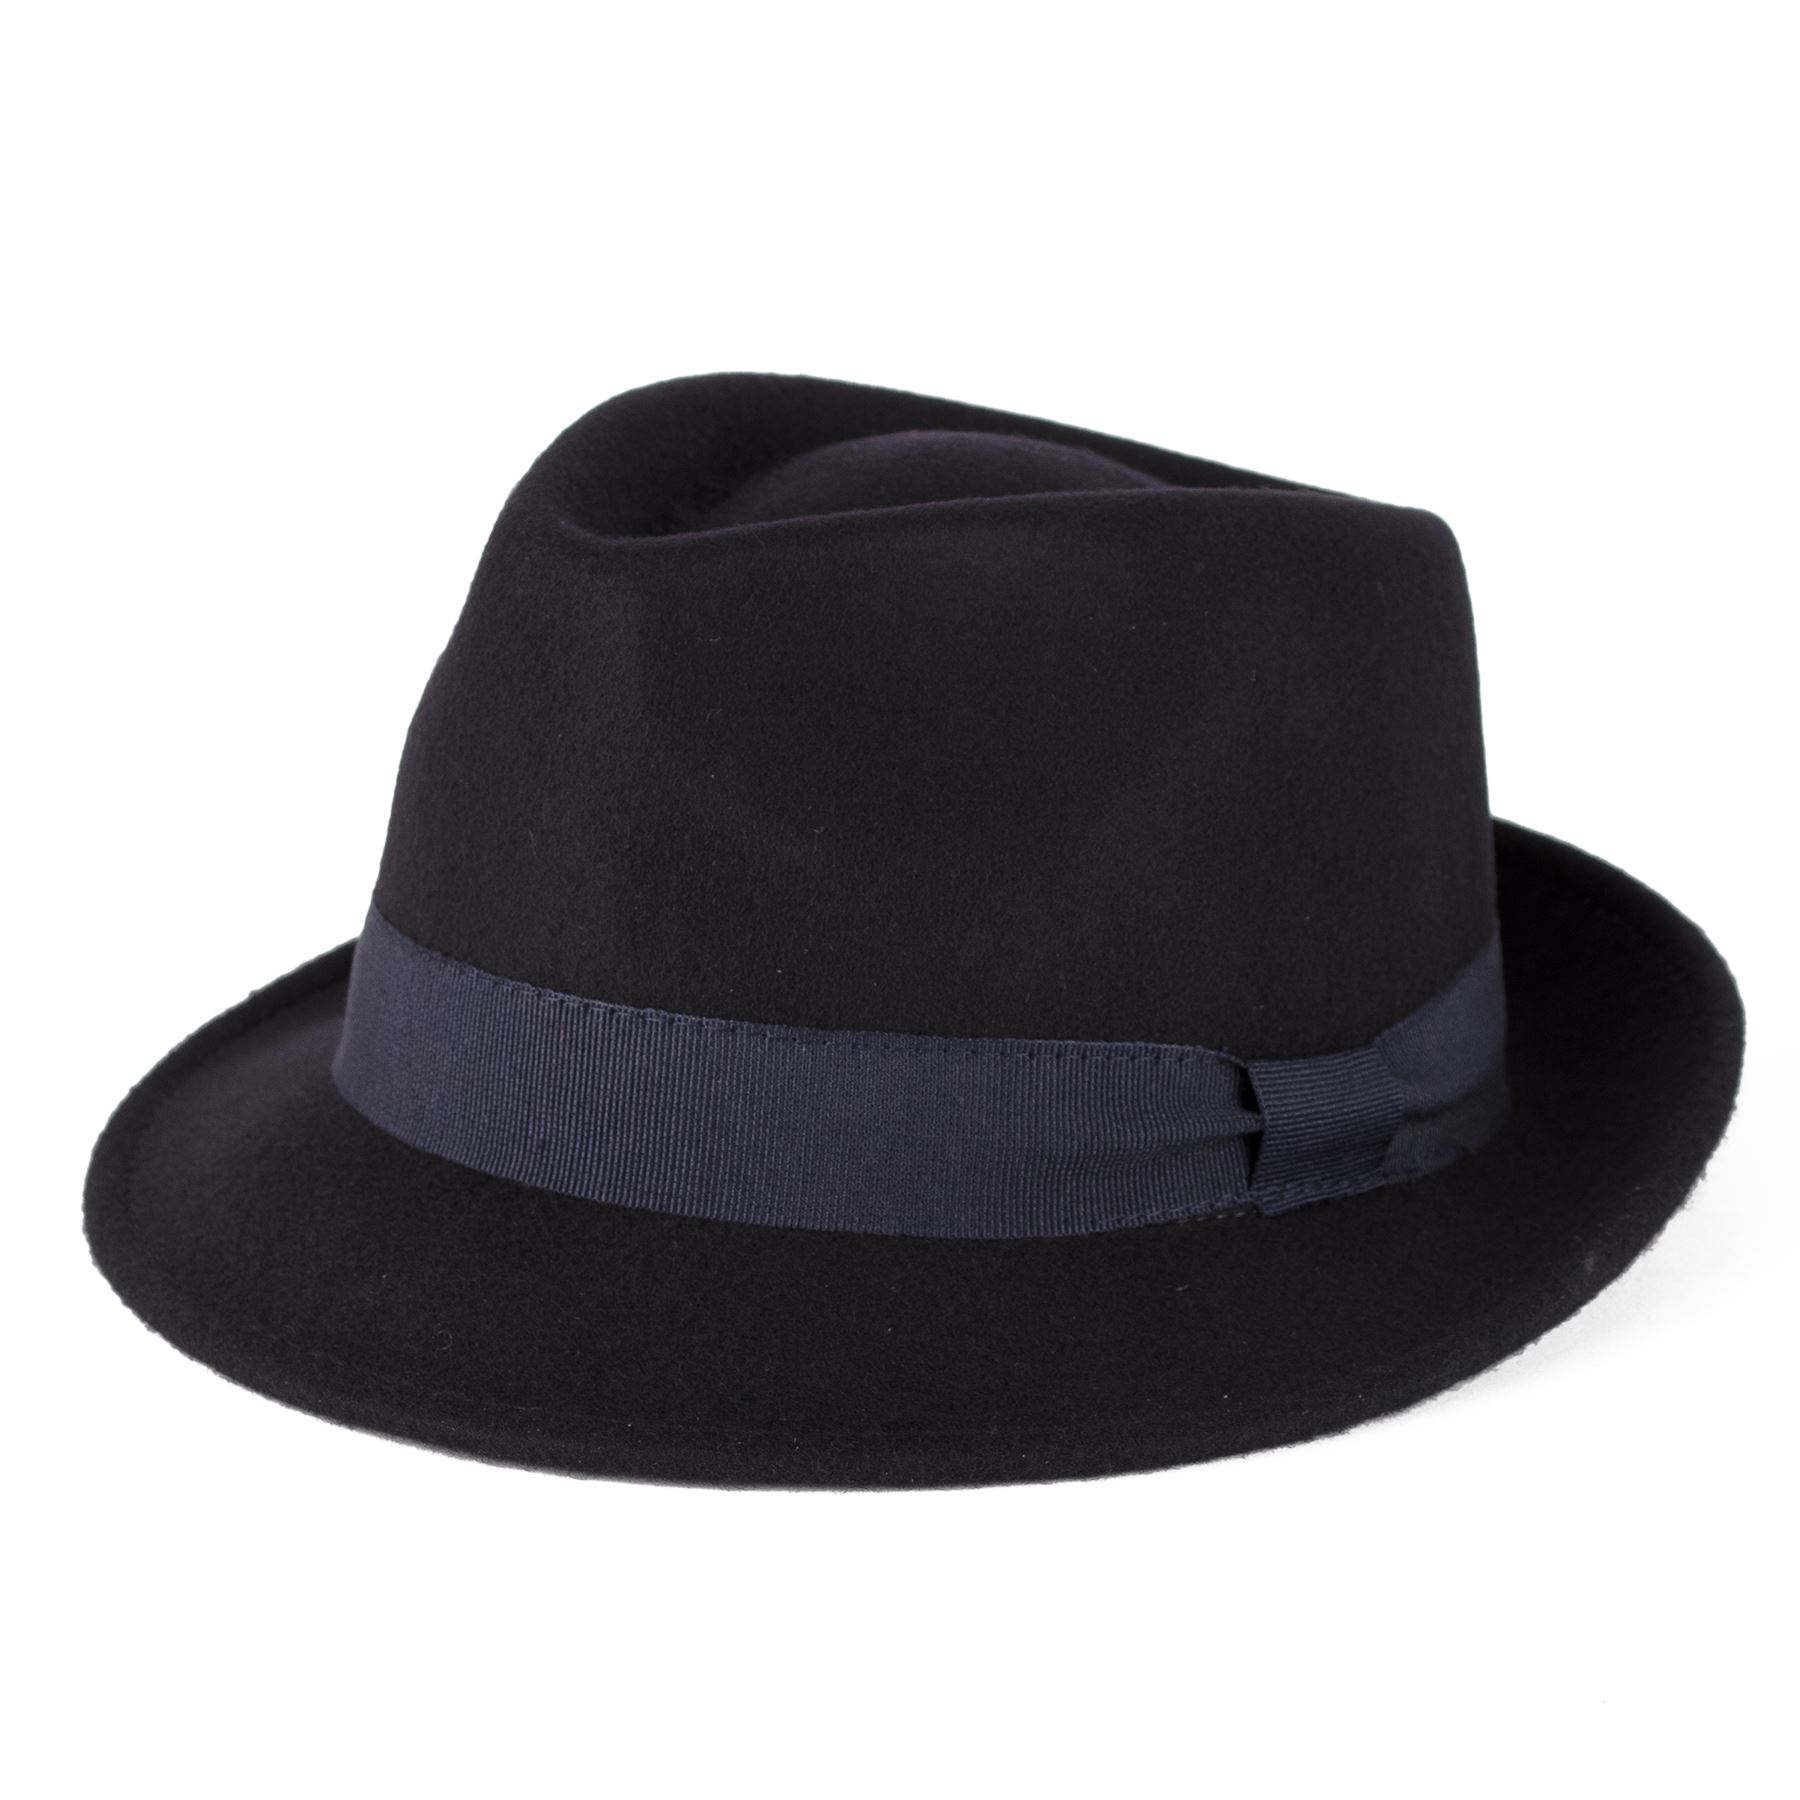 100 Wool Trilby Hat With Grosgrain Band Handmade in Italy Navy L (59 ... b69890bb4a6